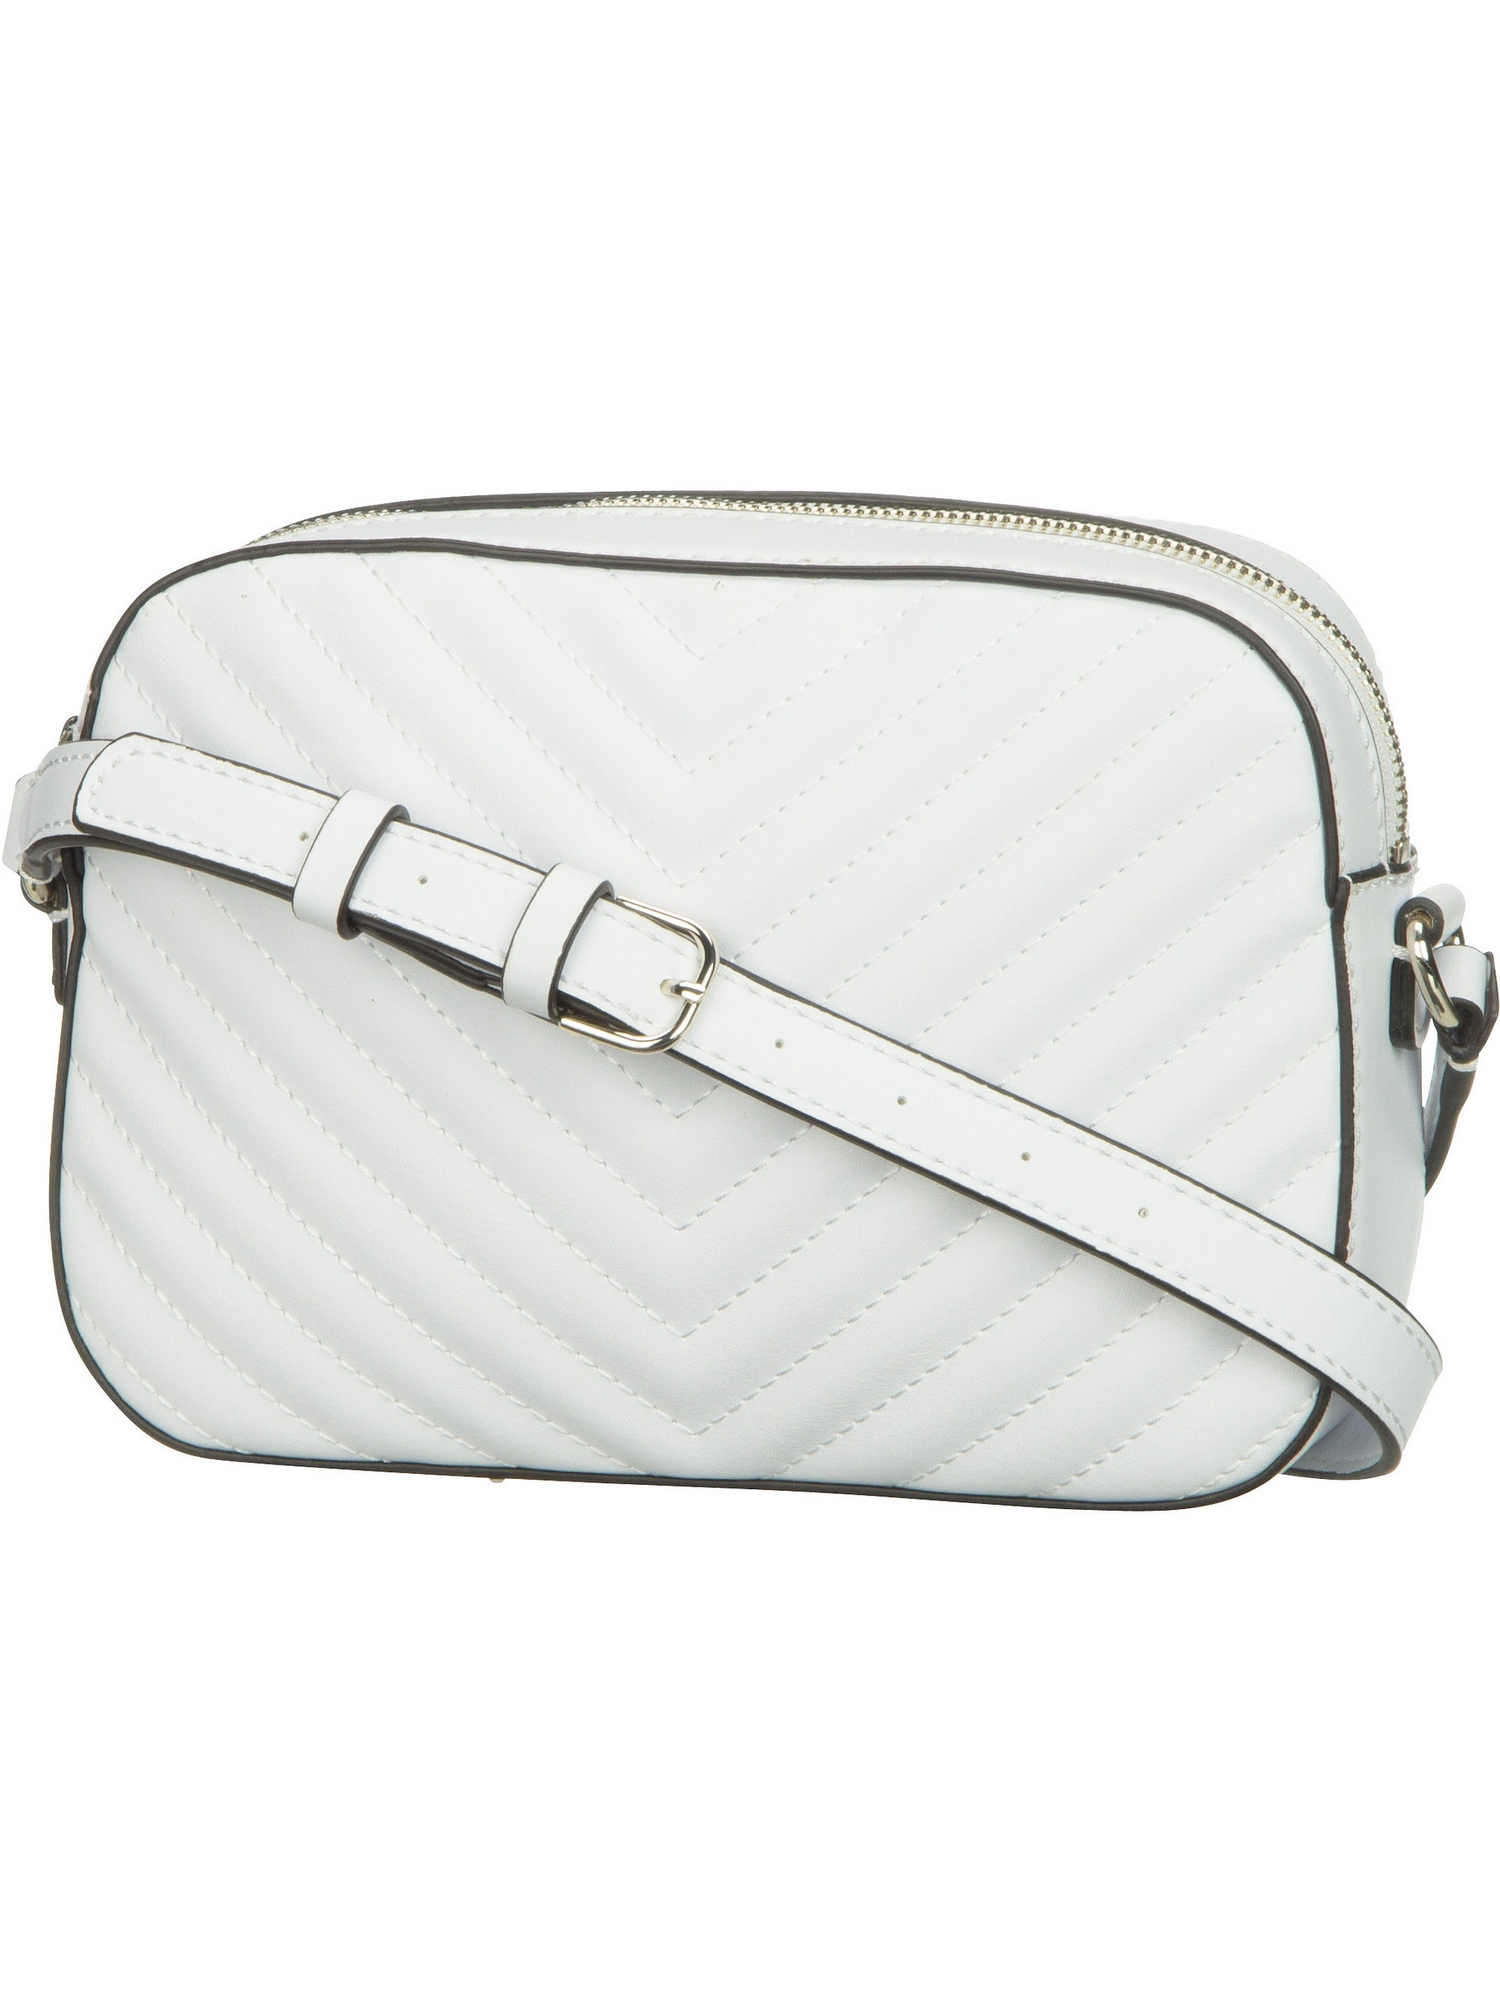 Guess: Kamryn BQ Crossbody Top Zip